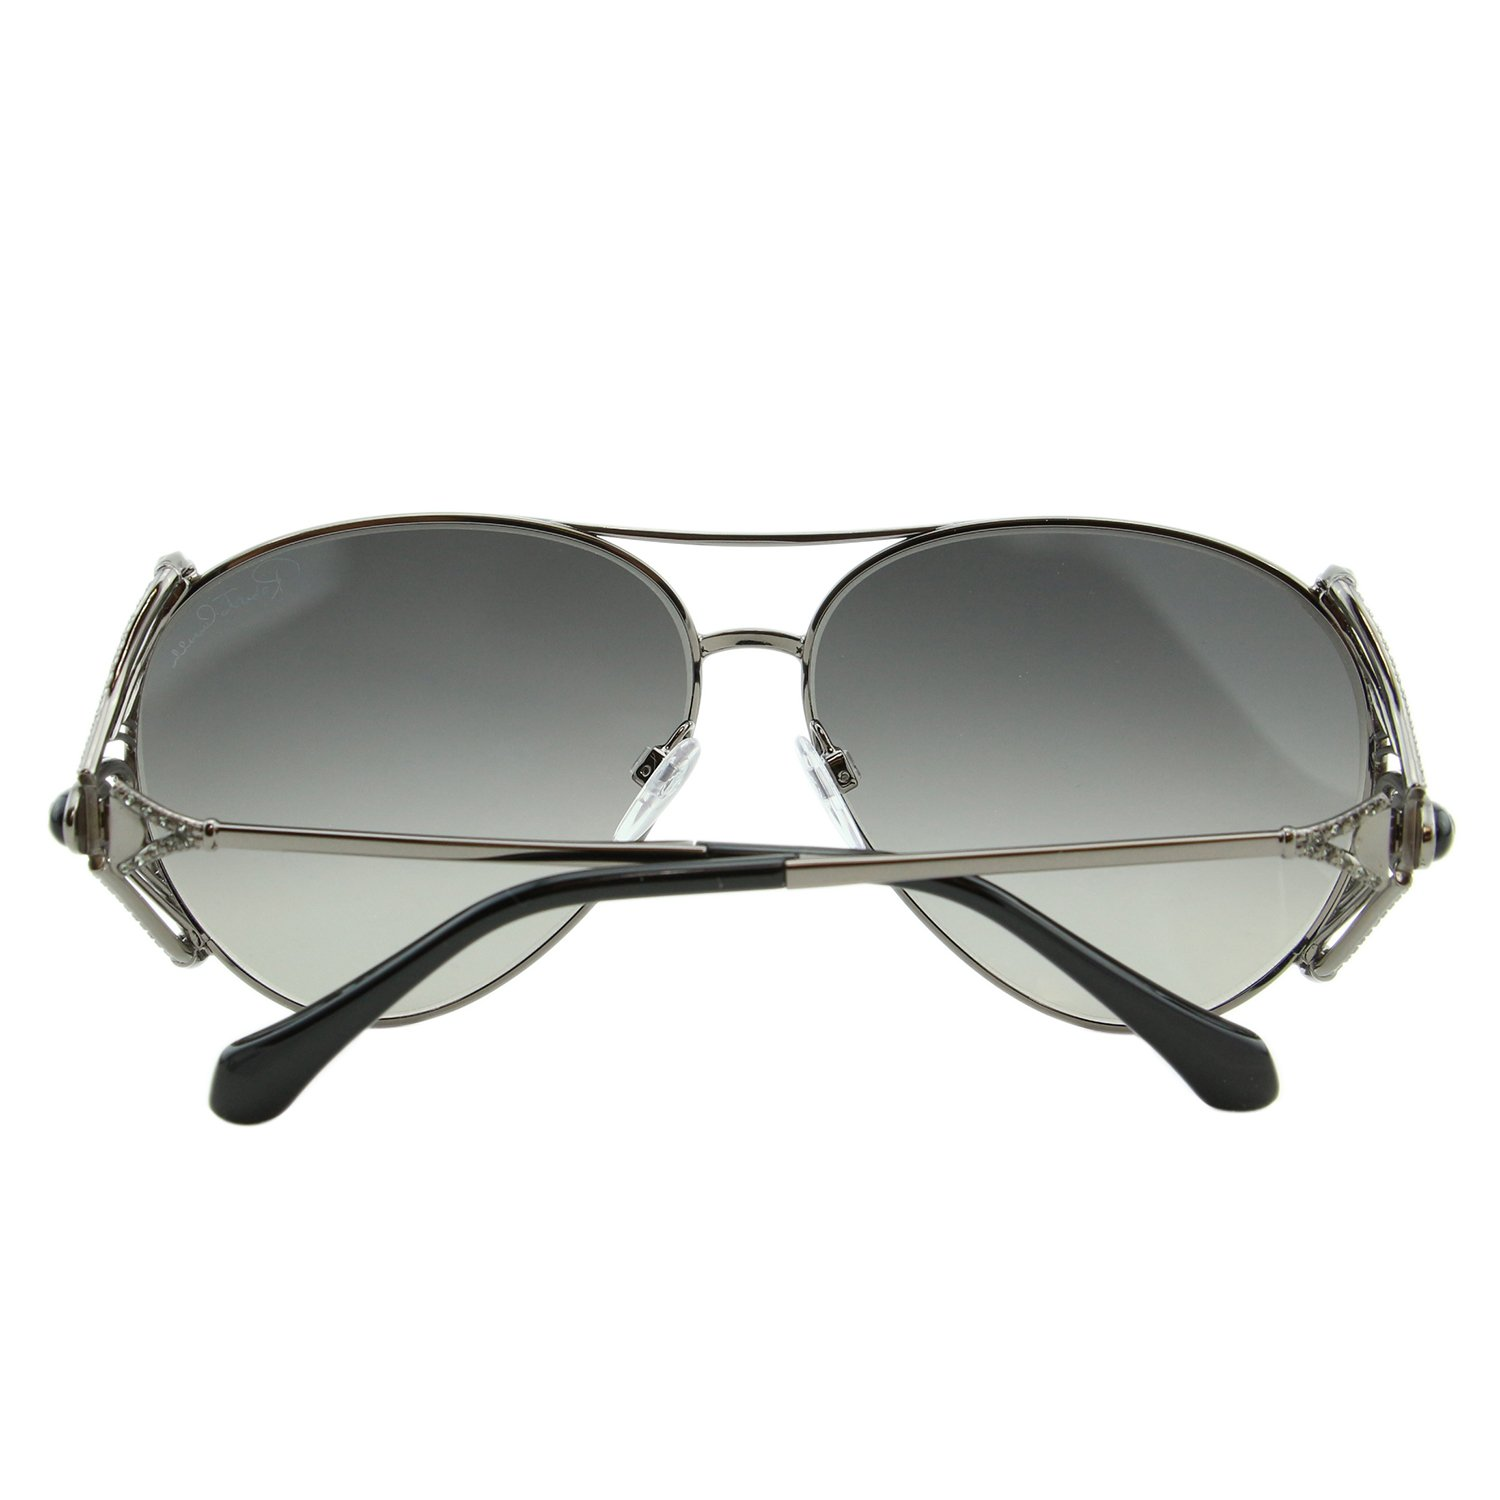 9e13929f702 Amazon.com  2018 Roberto Cavalli Fucecchio RC-1057 Women Swarovski Mirrored  Aviator Sunglasses  Clothing